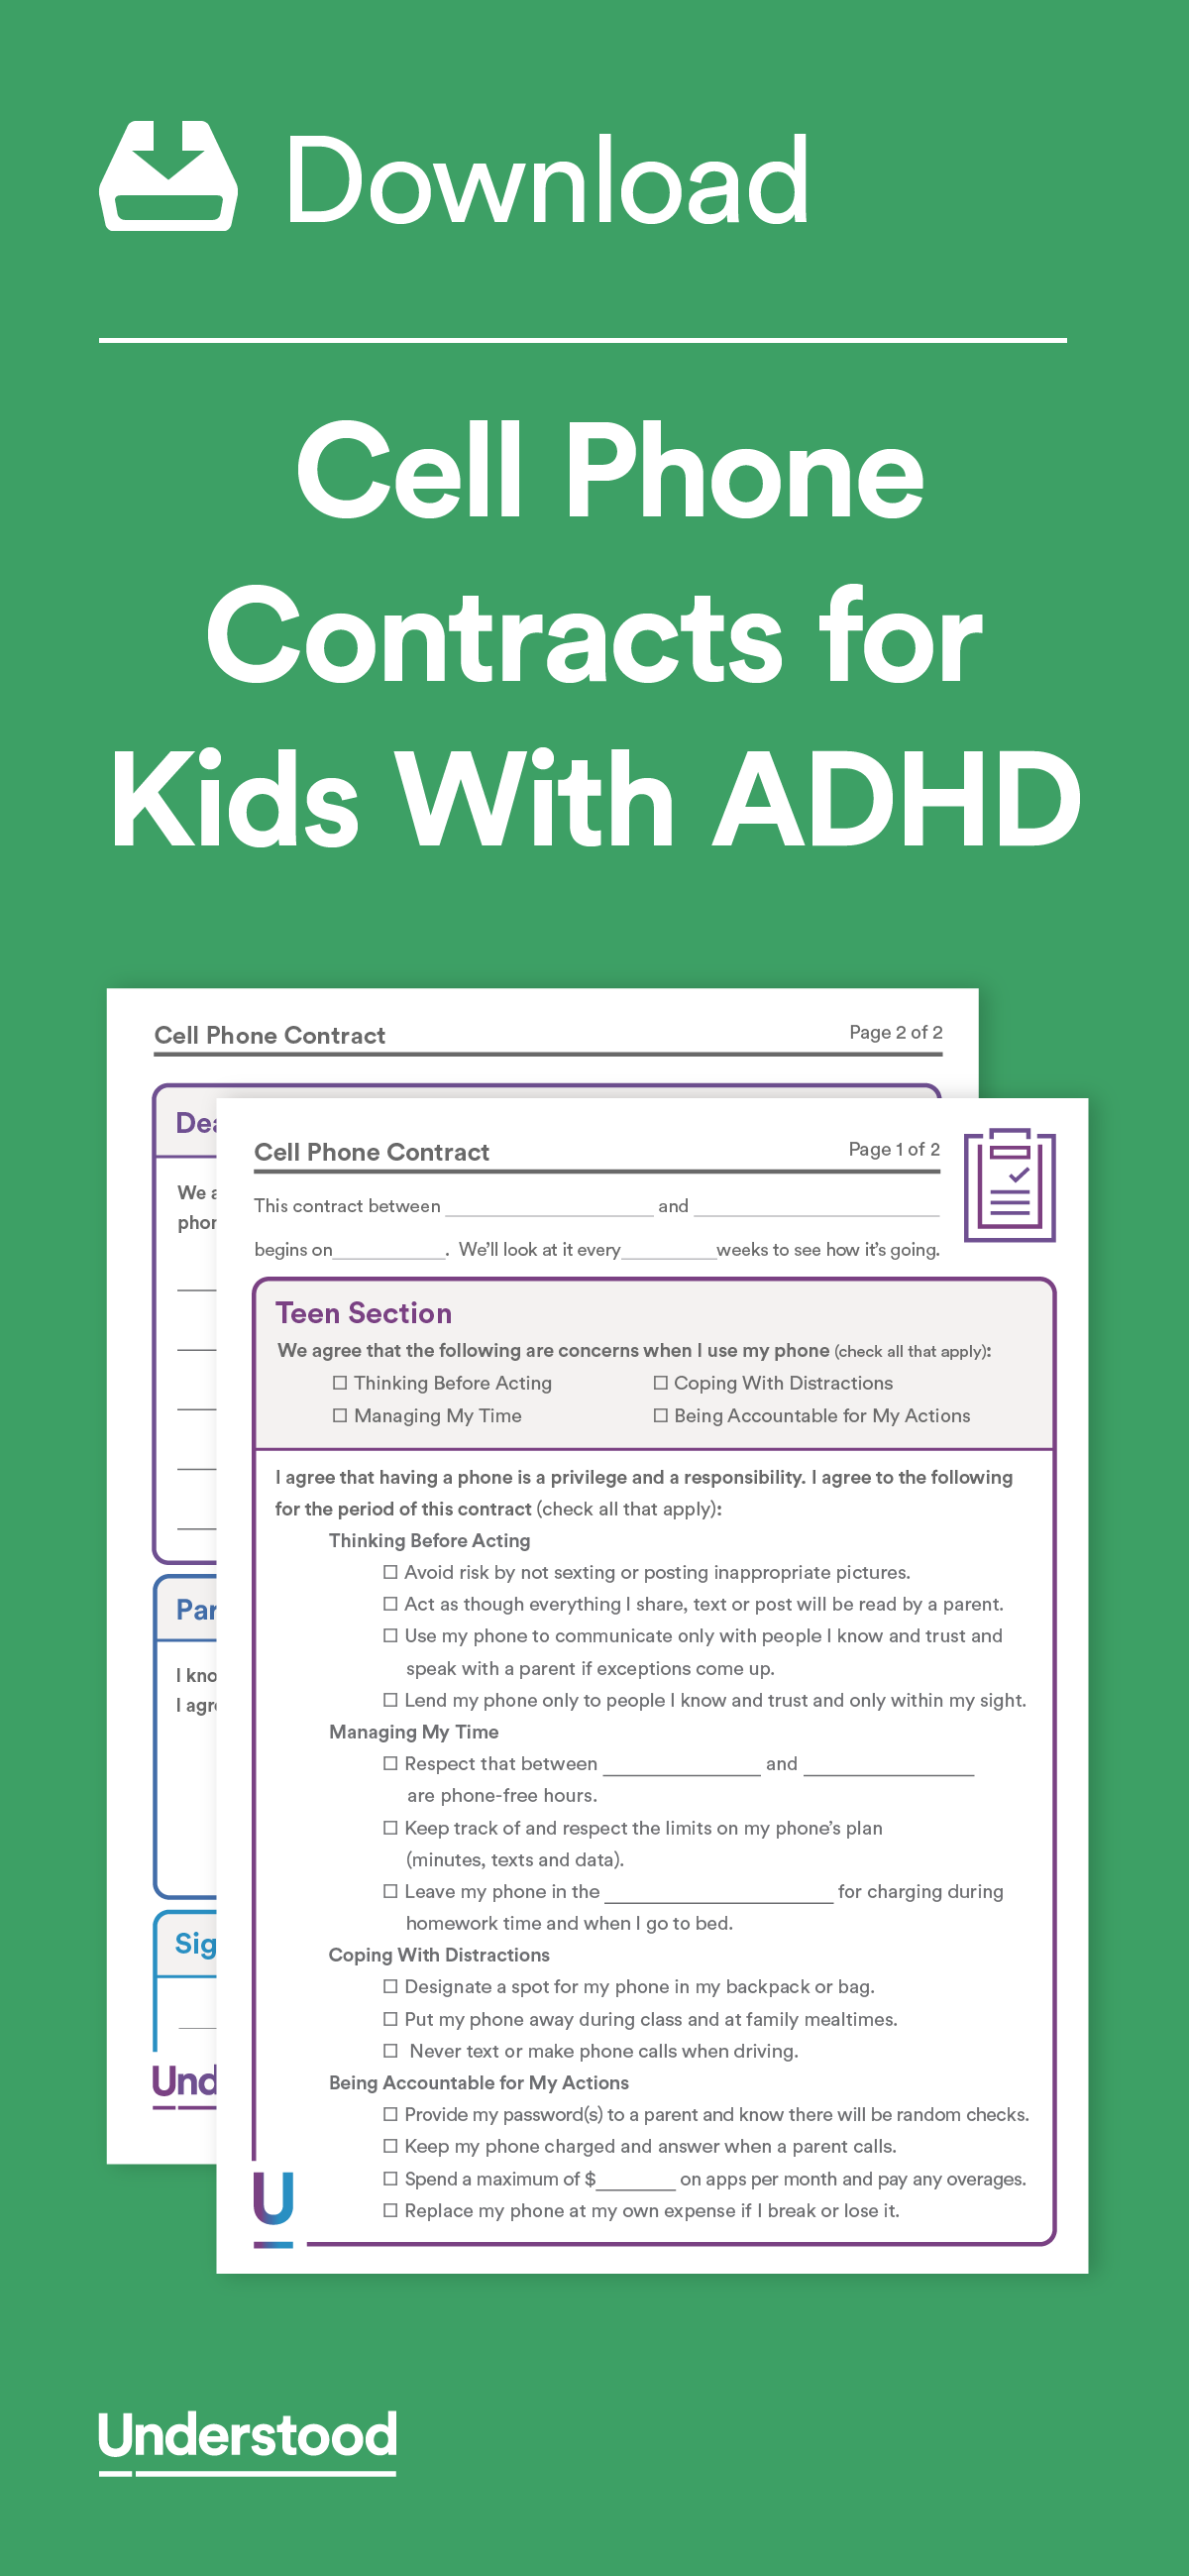 Not Broken, Just Different: Explaining ADHD to a Young Child foto